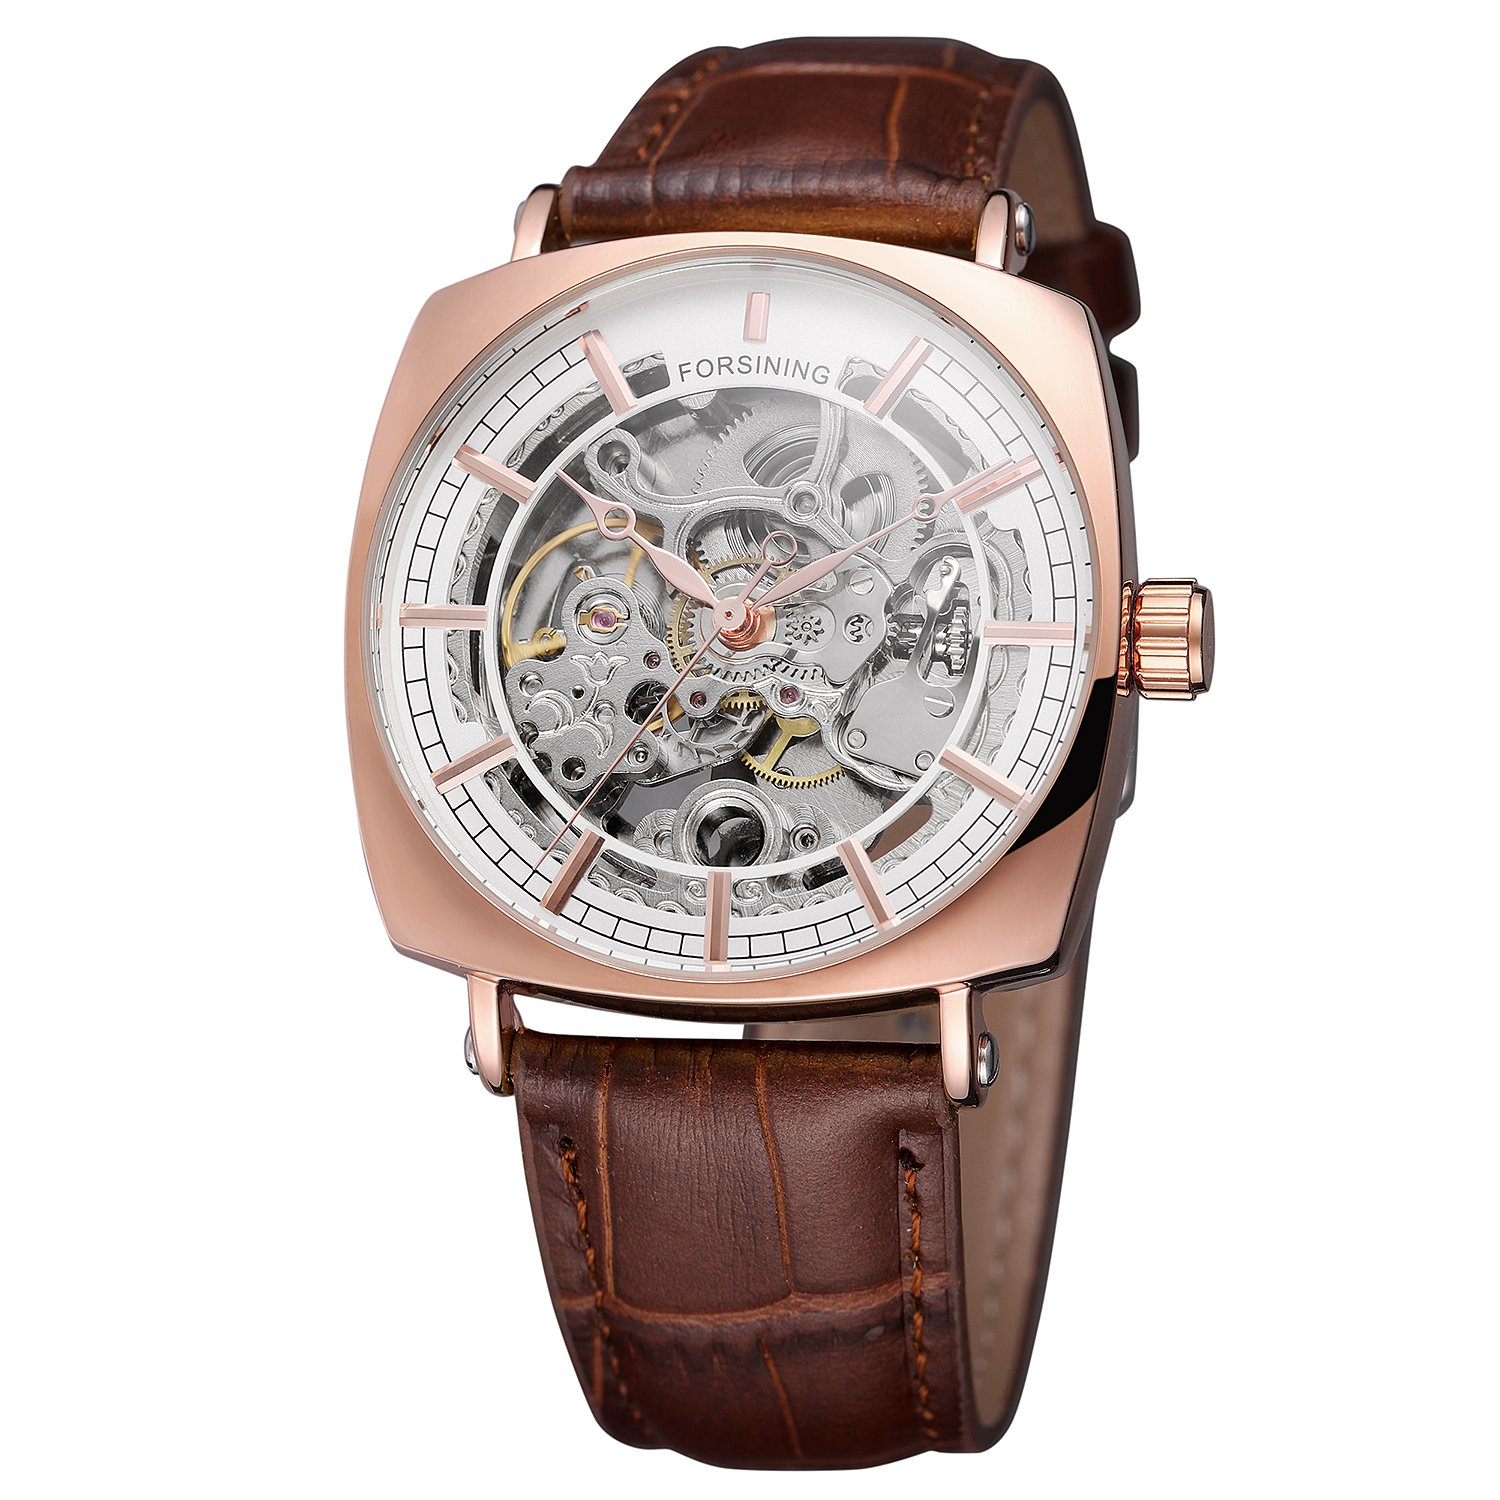 Forsining Men's Quality Automatic Self-winding Skeleton Square Watch with Genuine Leather Strap by FORSINING